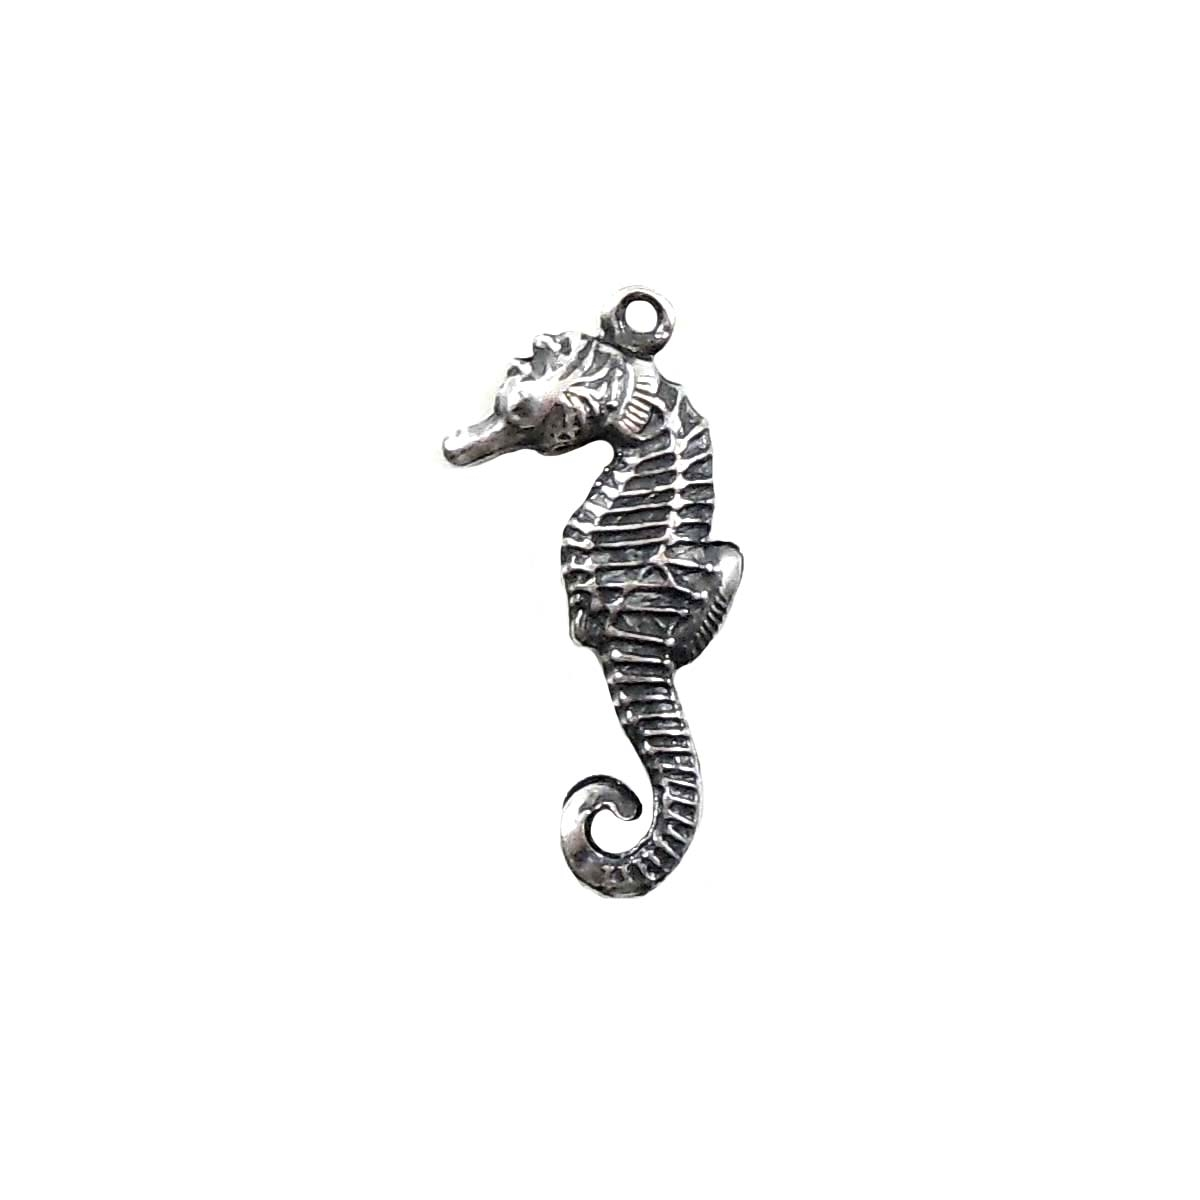 seahorse, 03458, silverplate, seahorse charm, pendant, seahorse pendant, charm, silverware silverplate, seahorse stamping, seahorse earring, silver seahorse, beach jewelry, ocean, sea creature, Bsue Boutiques